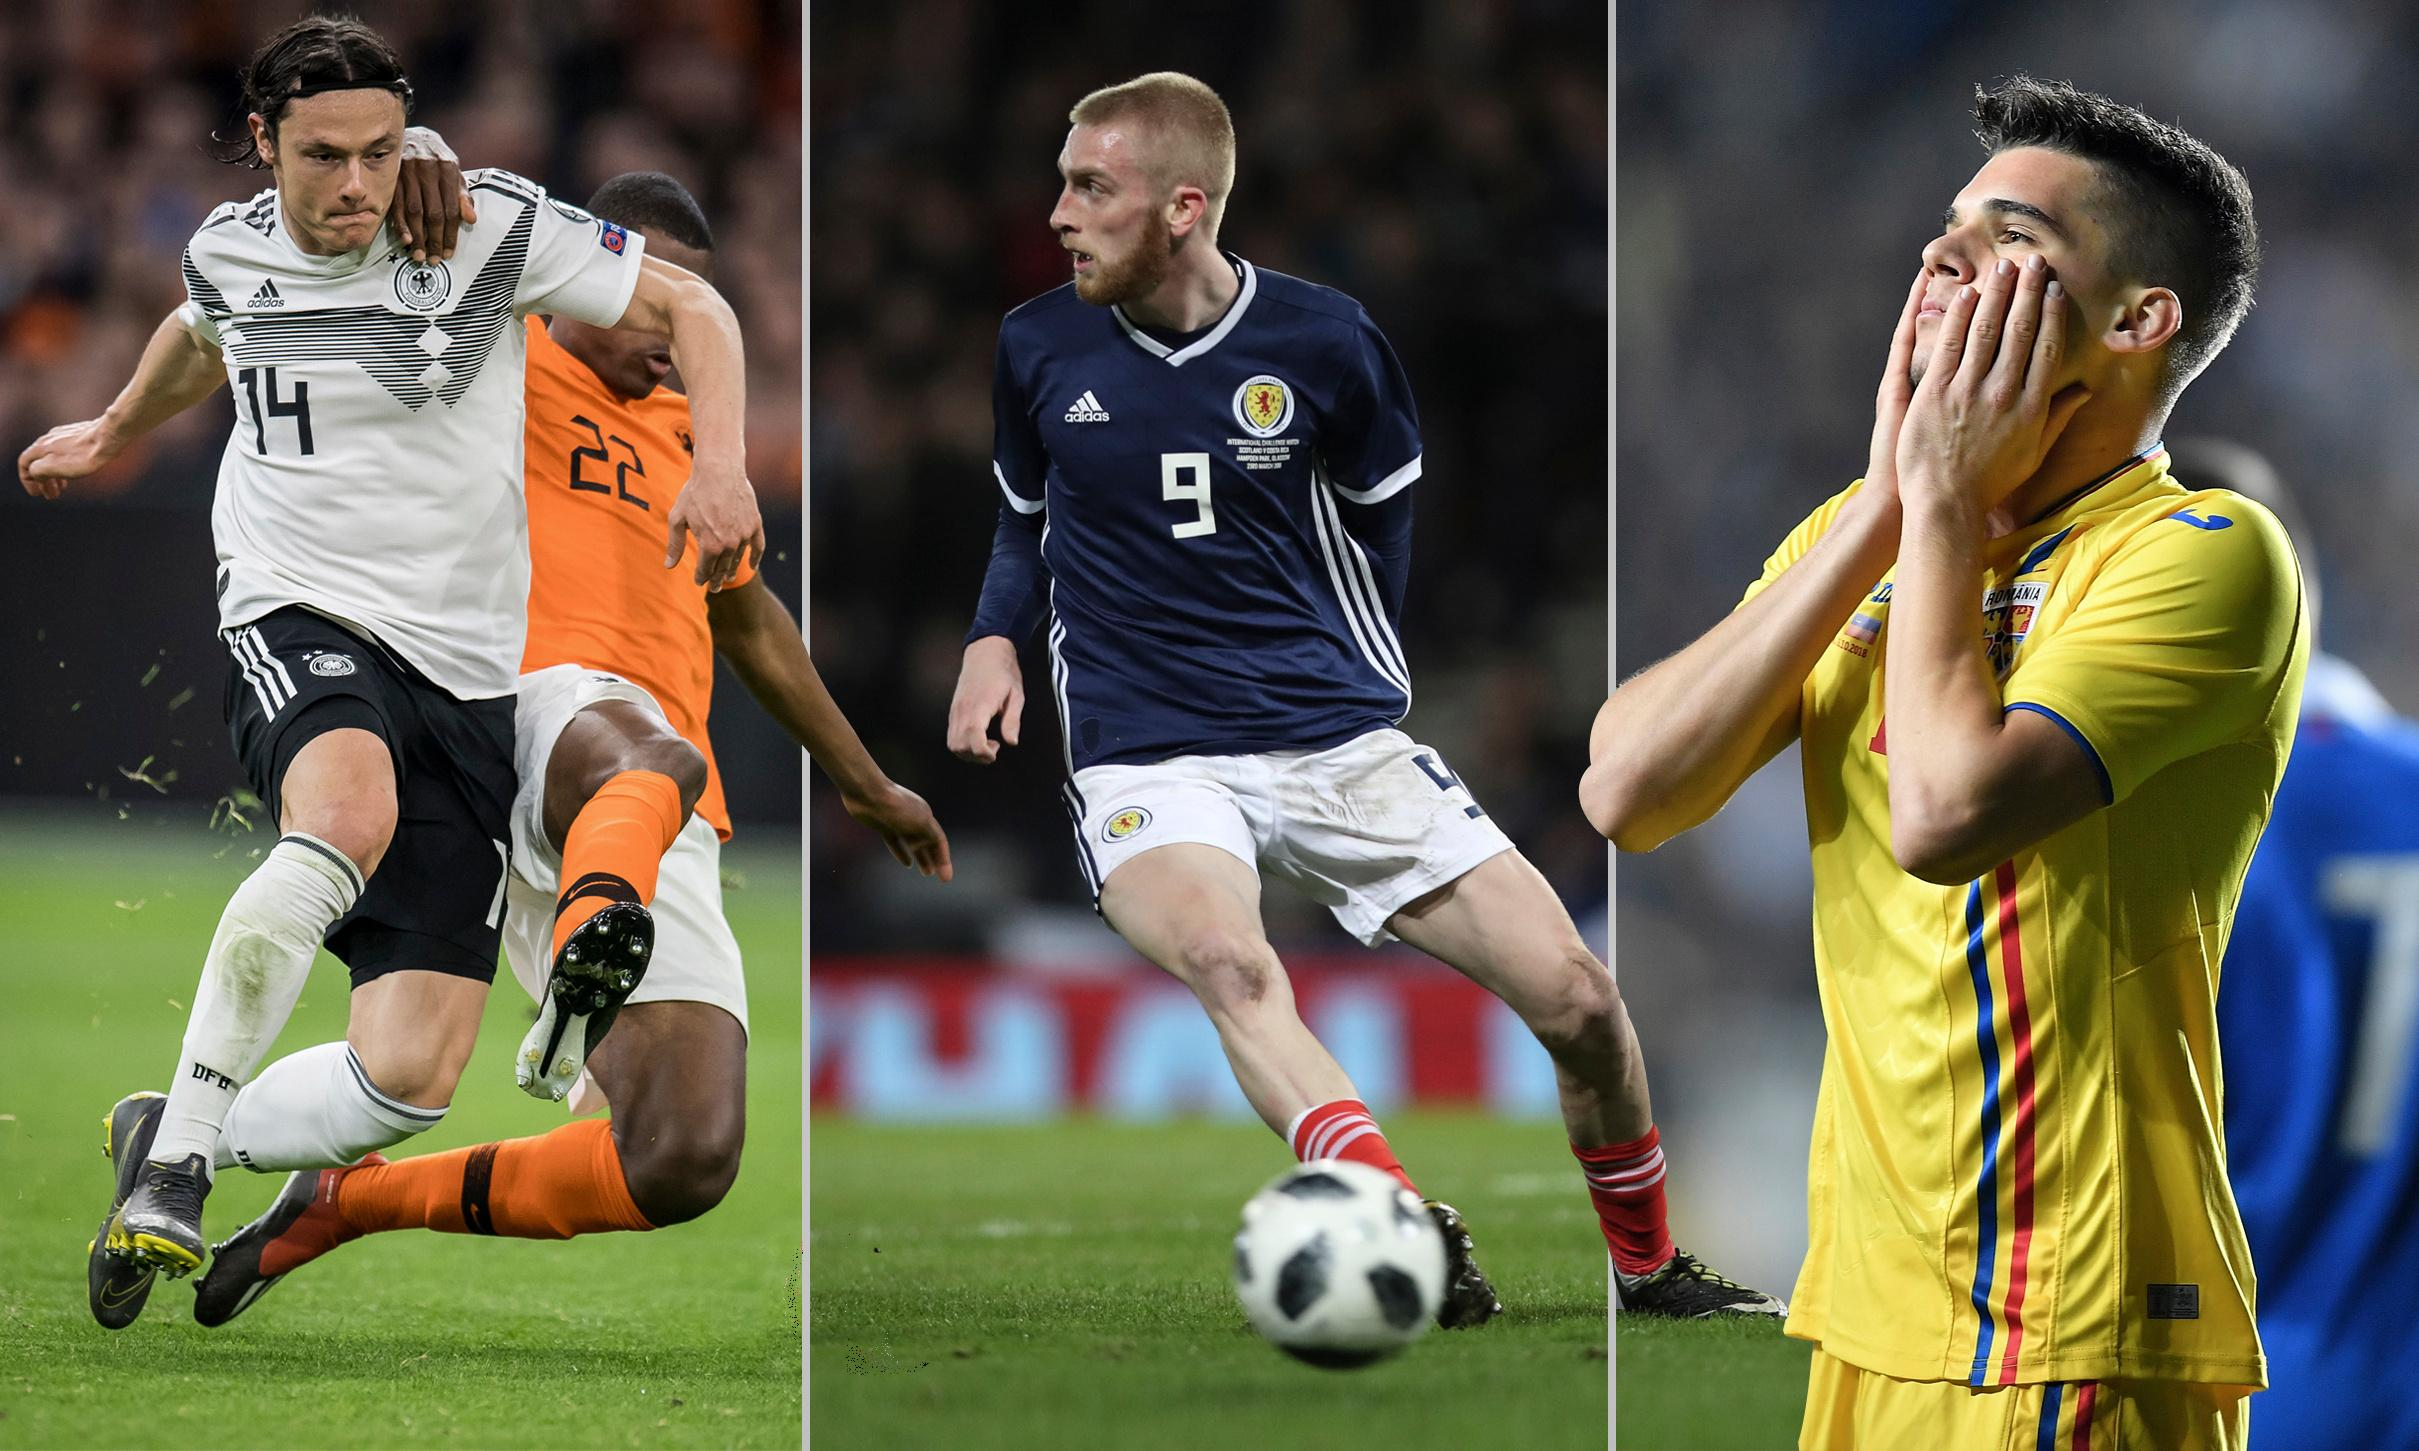 Euro 2020 qualifiers and international football: 10 things to look out for